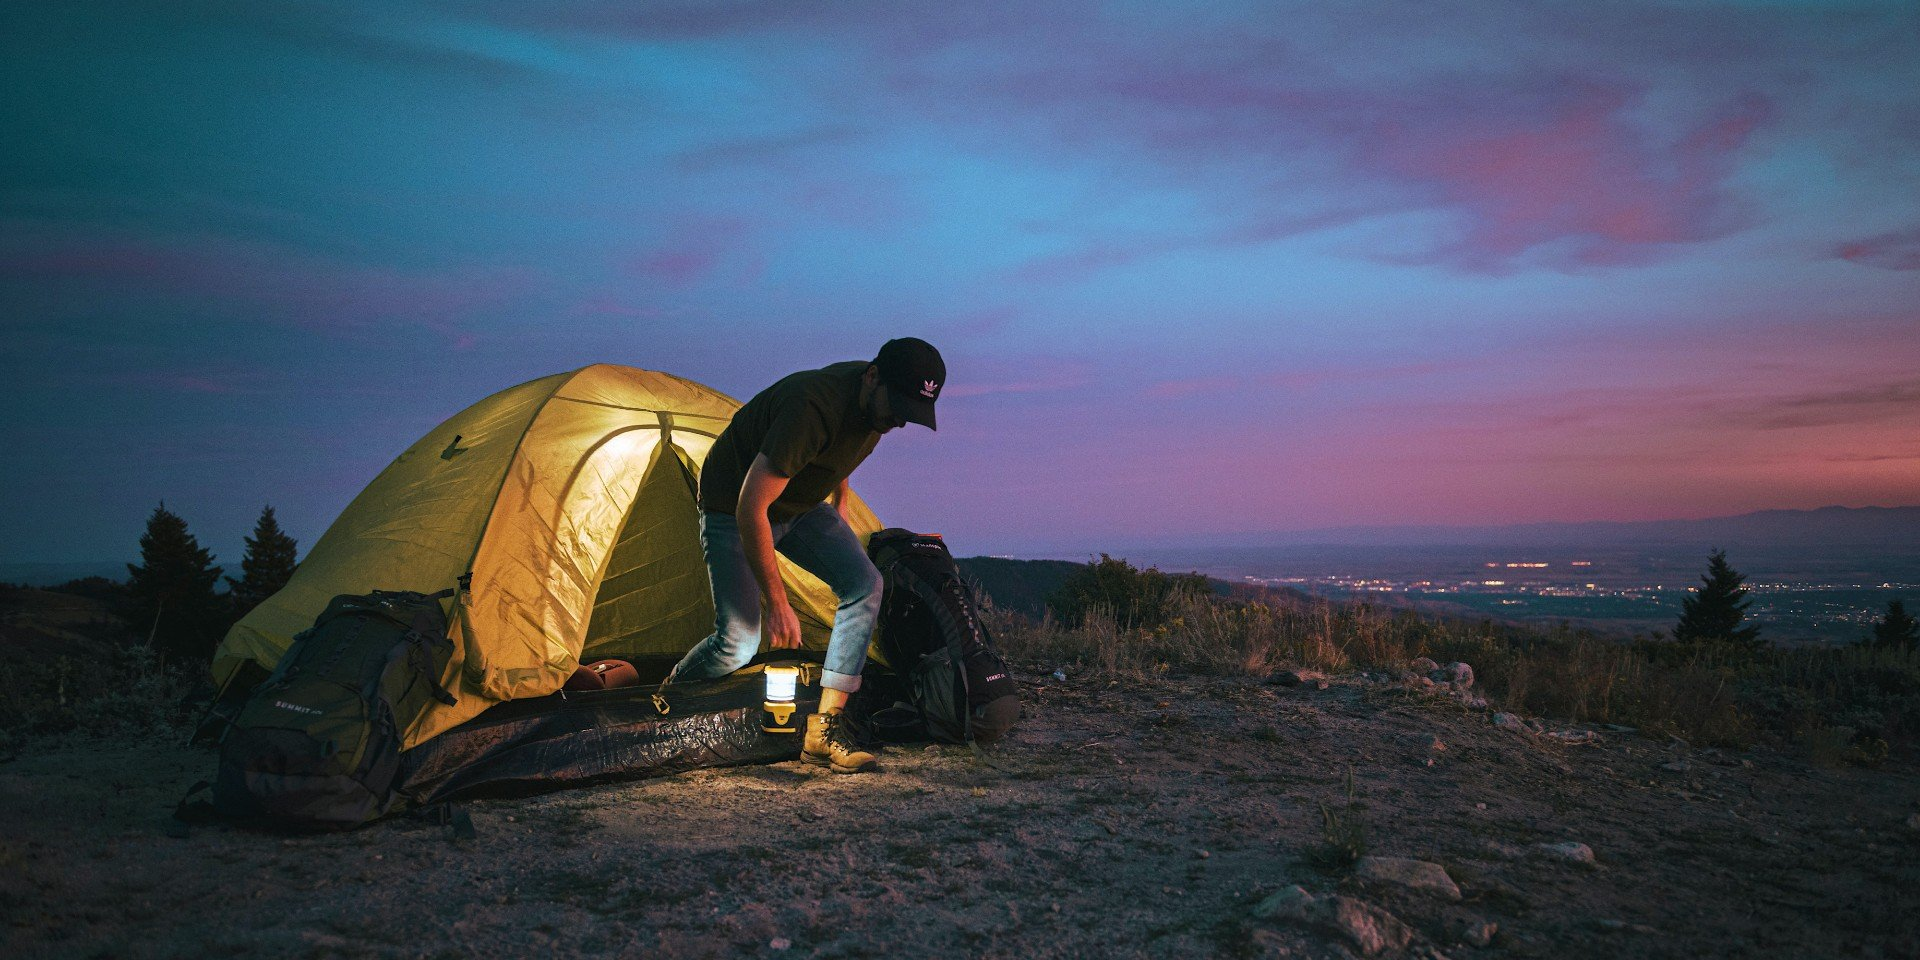 Best backpacking tent for tall person: 7 ultralight tents for tall people in 2021